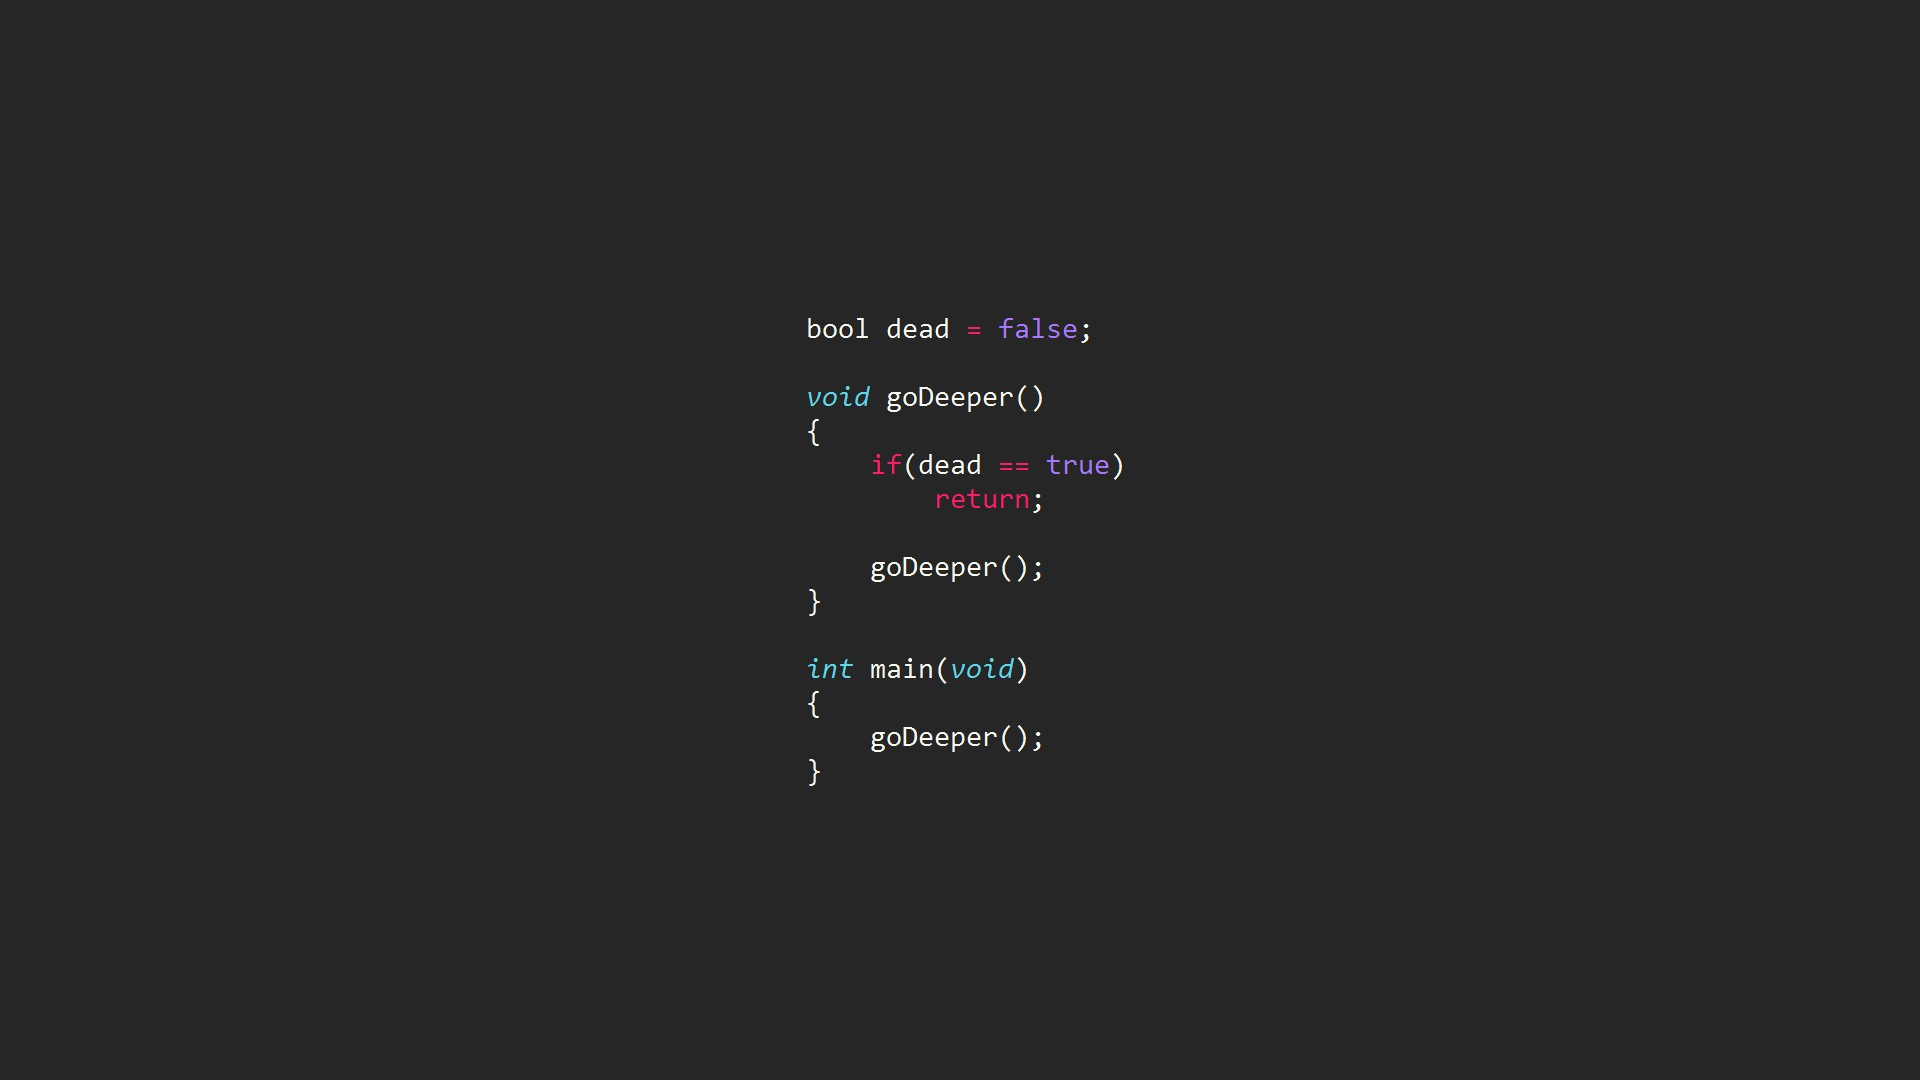 Code Images, Code Wallpapers - Gavin Noyes